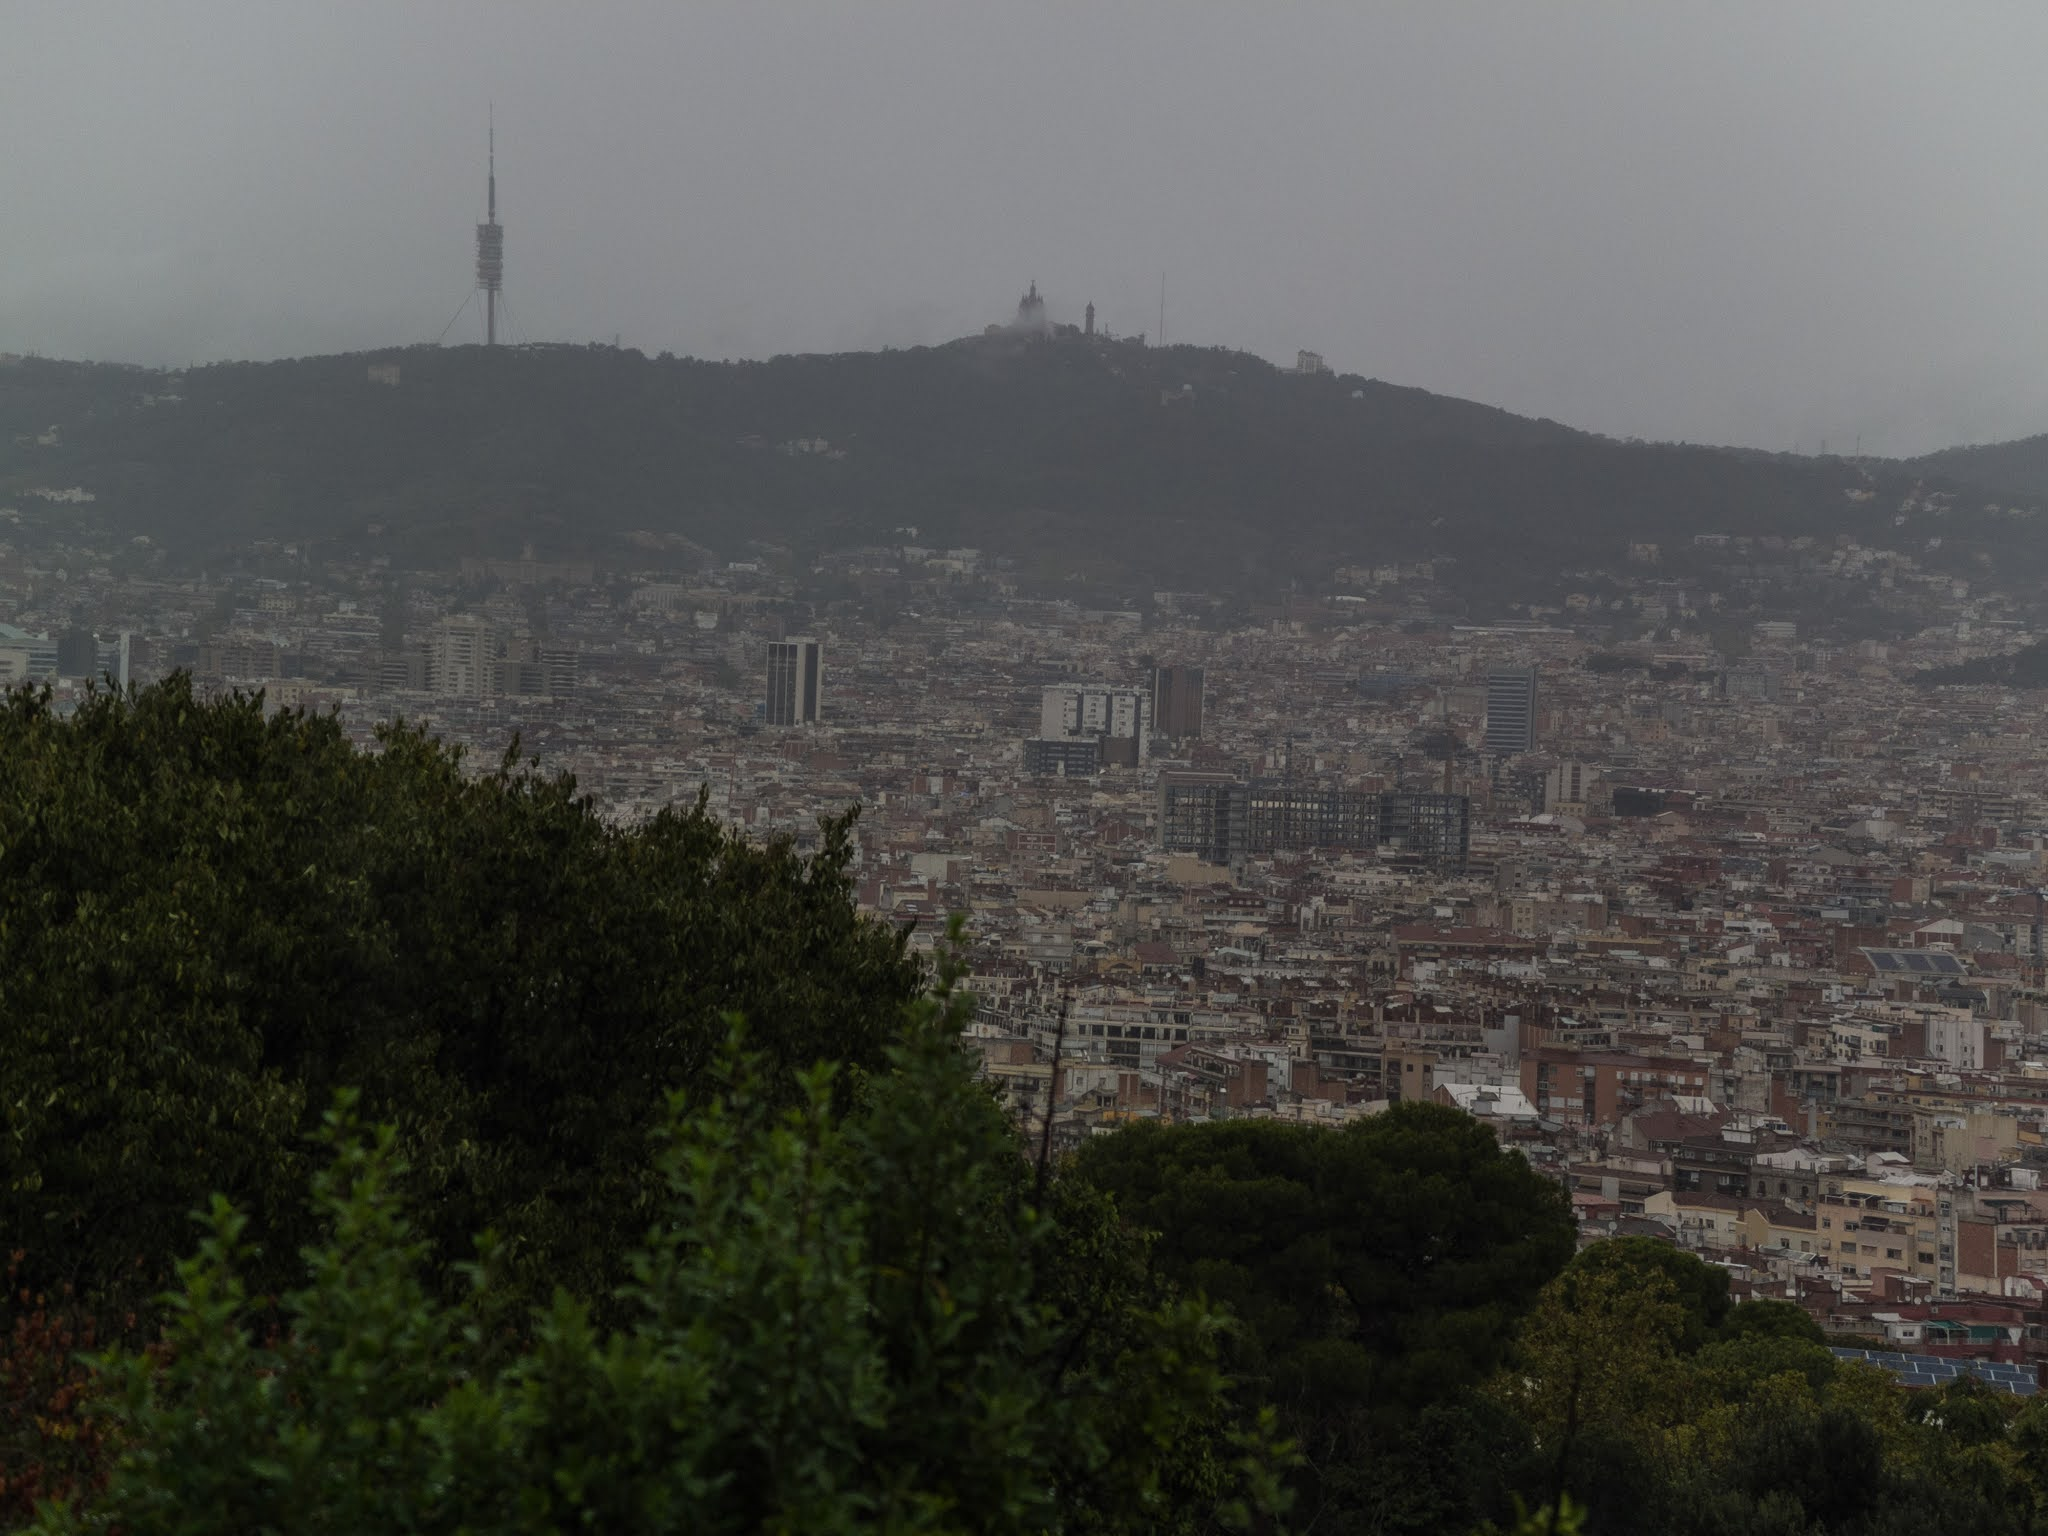 View of the city of Barcelona on a rainy day with mountains in the background.